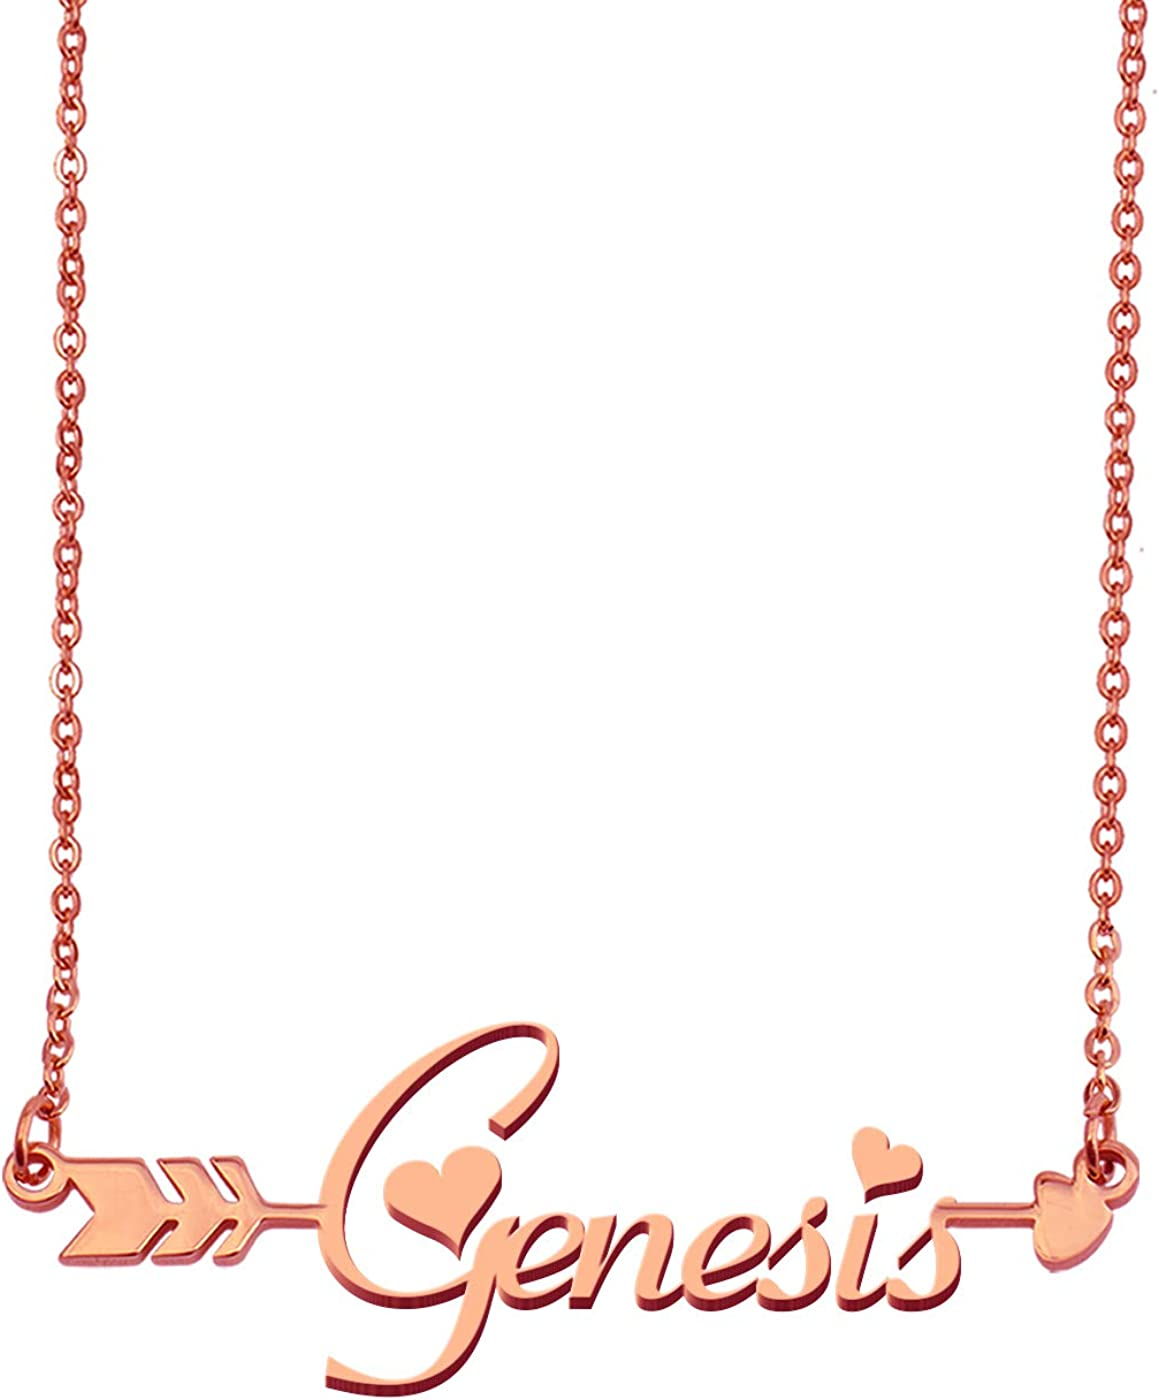 Aoloshow Customized Custom Name Necklace Personalized - Custom Any Initial Plated Handwriting Nameplate Necklace Gift for Womens Girls